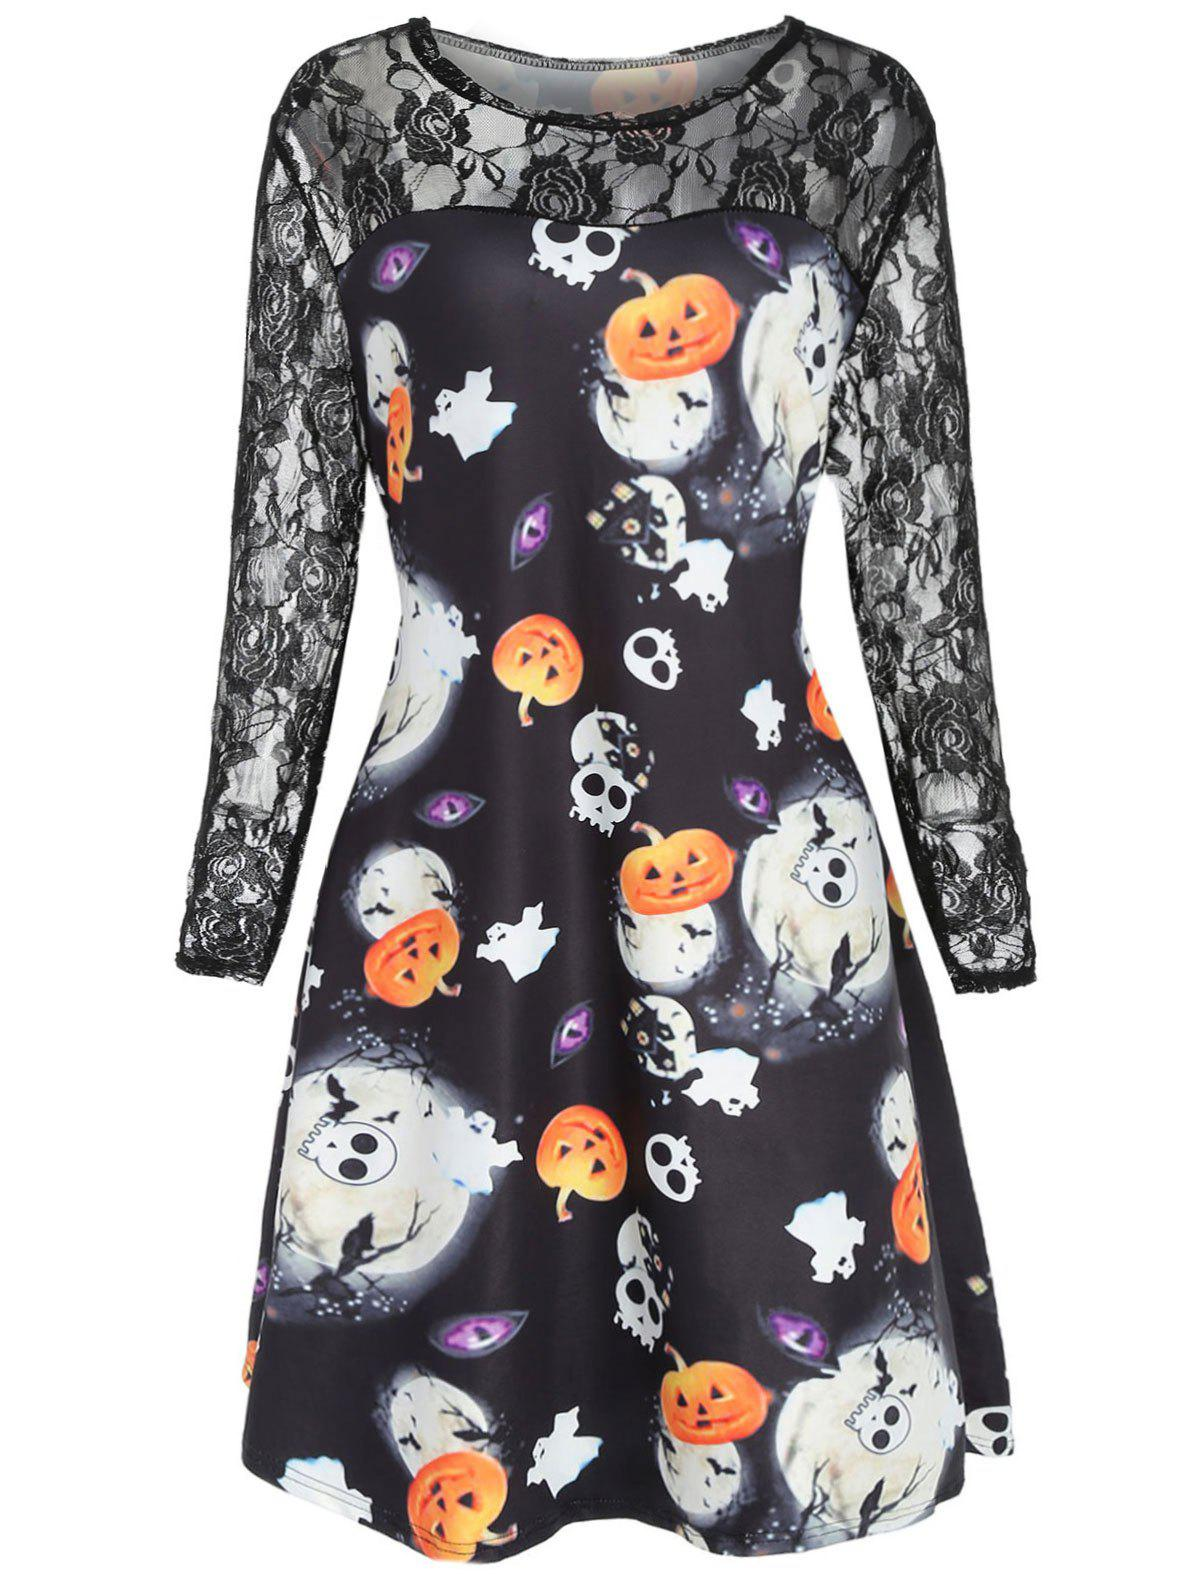 Affordable Plus Size Halloween Lace Panel Dress